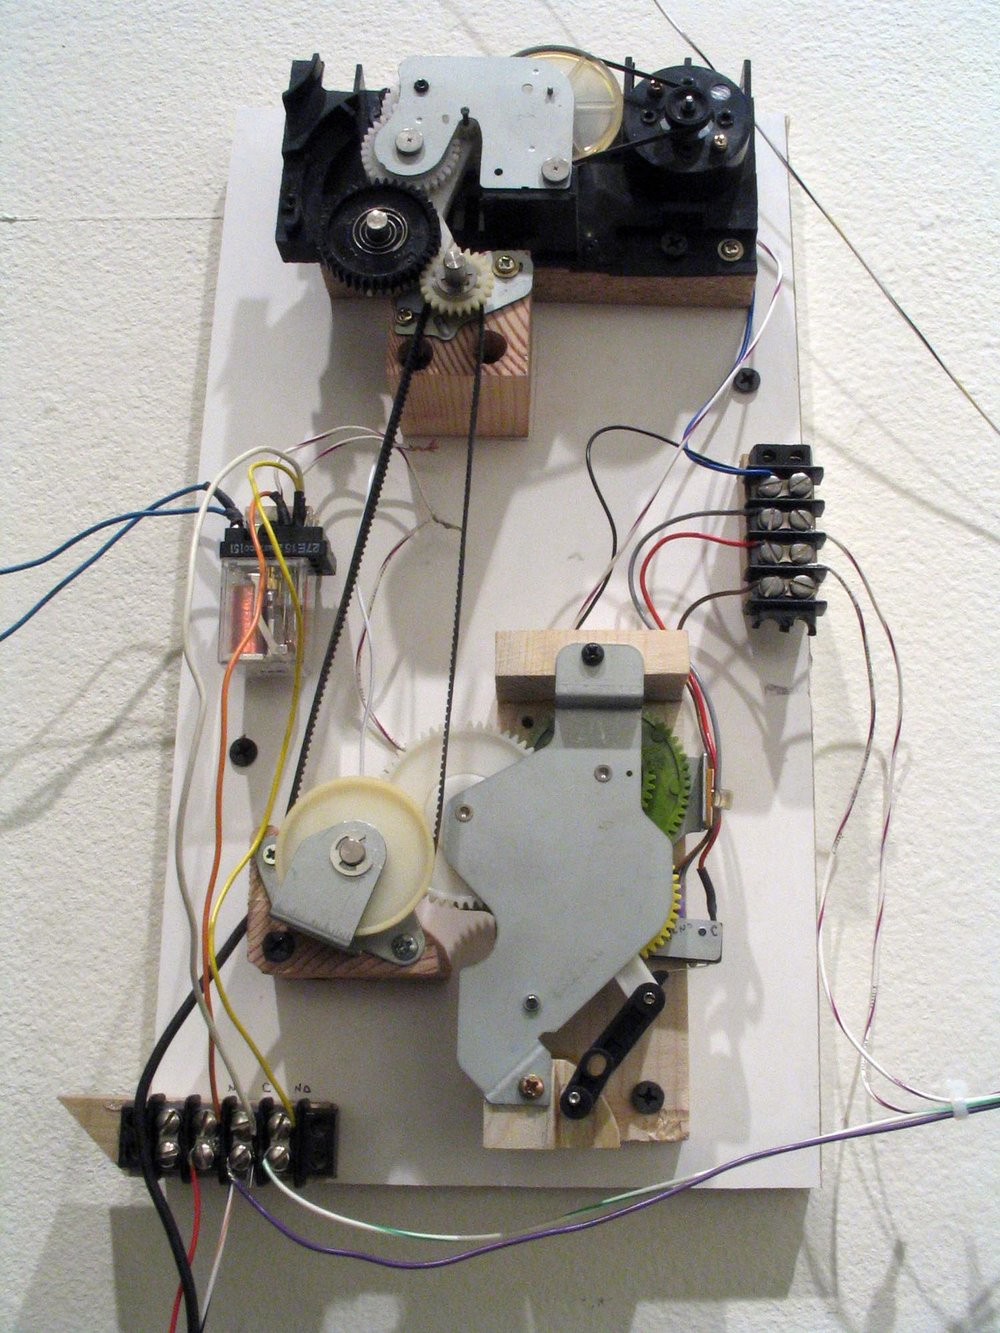 Some of the signals from the tattoo-machine-activated switch end up at this control board, whose assortment of scavenged gears translate the scattered on-offs into multiple signals with primitively configurable durations.